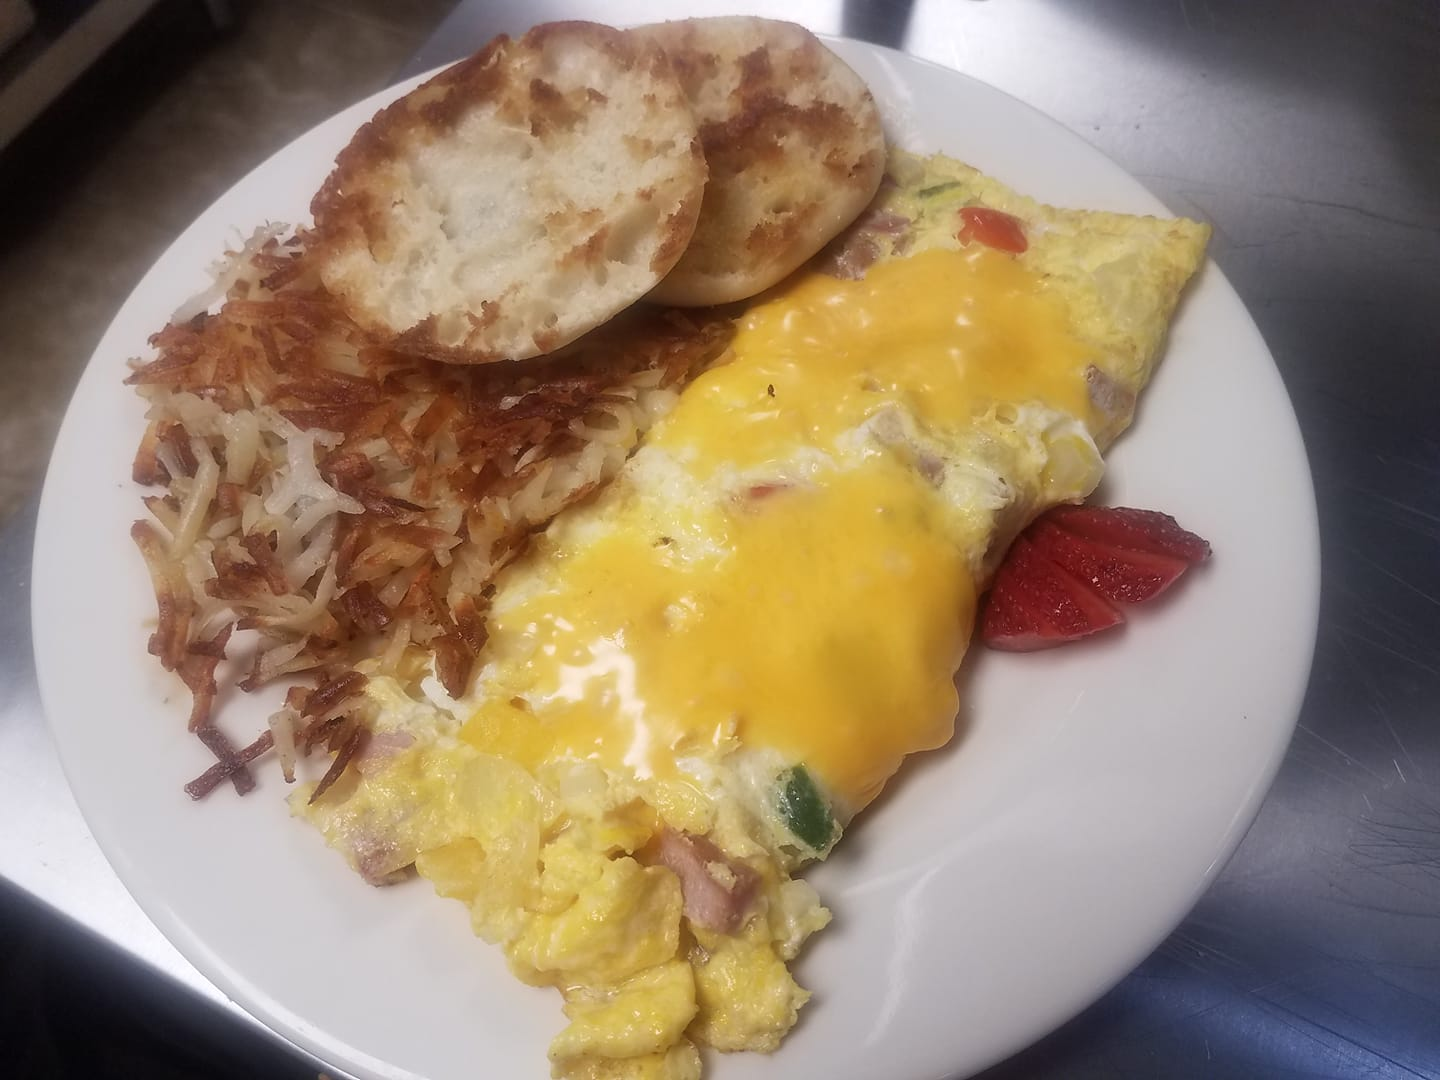 3 egg Western Omelet with shredded hashbrowns and a grilled English Muffin